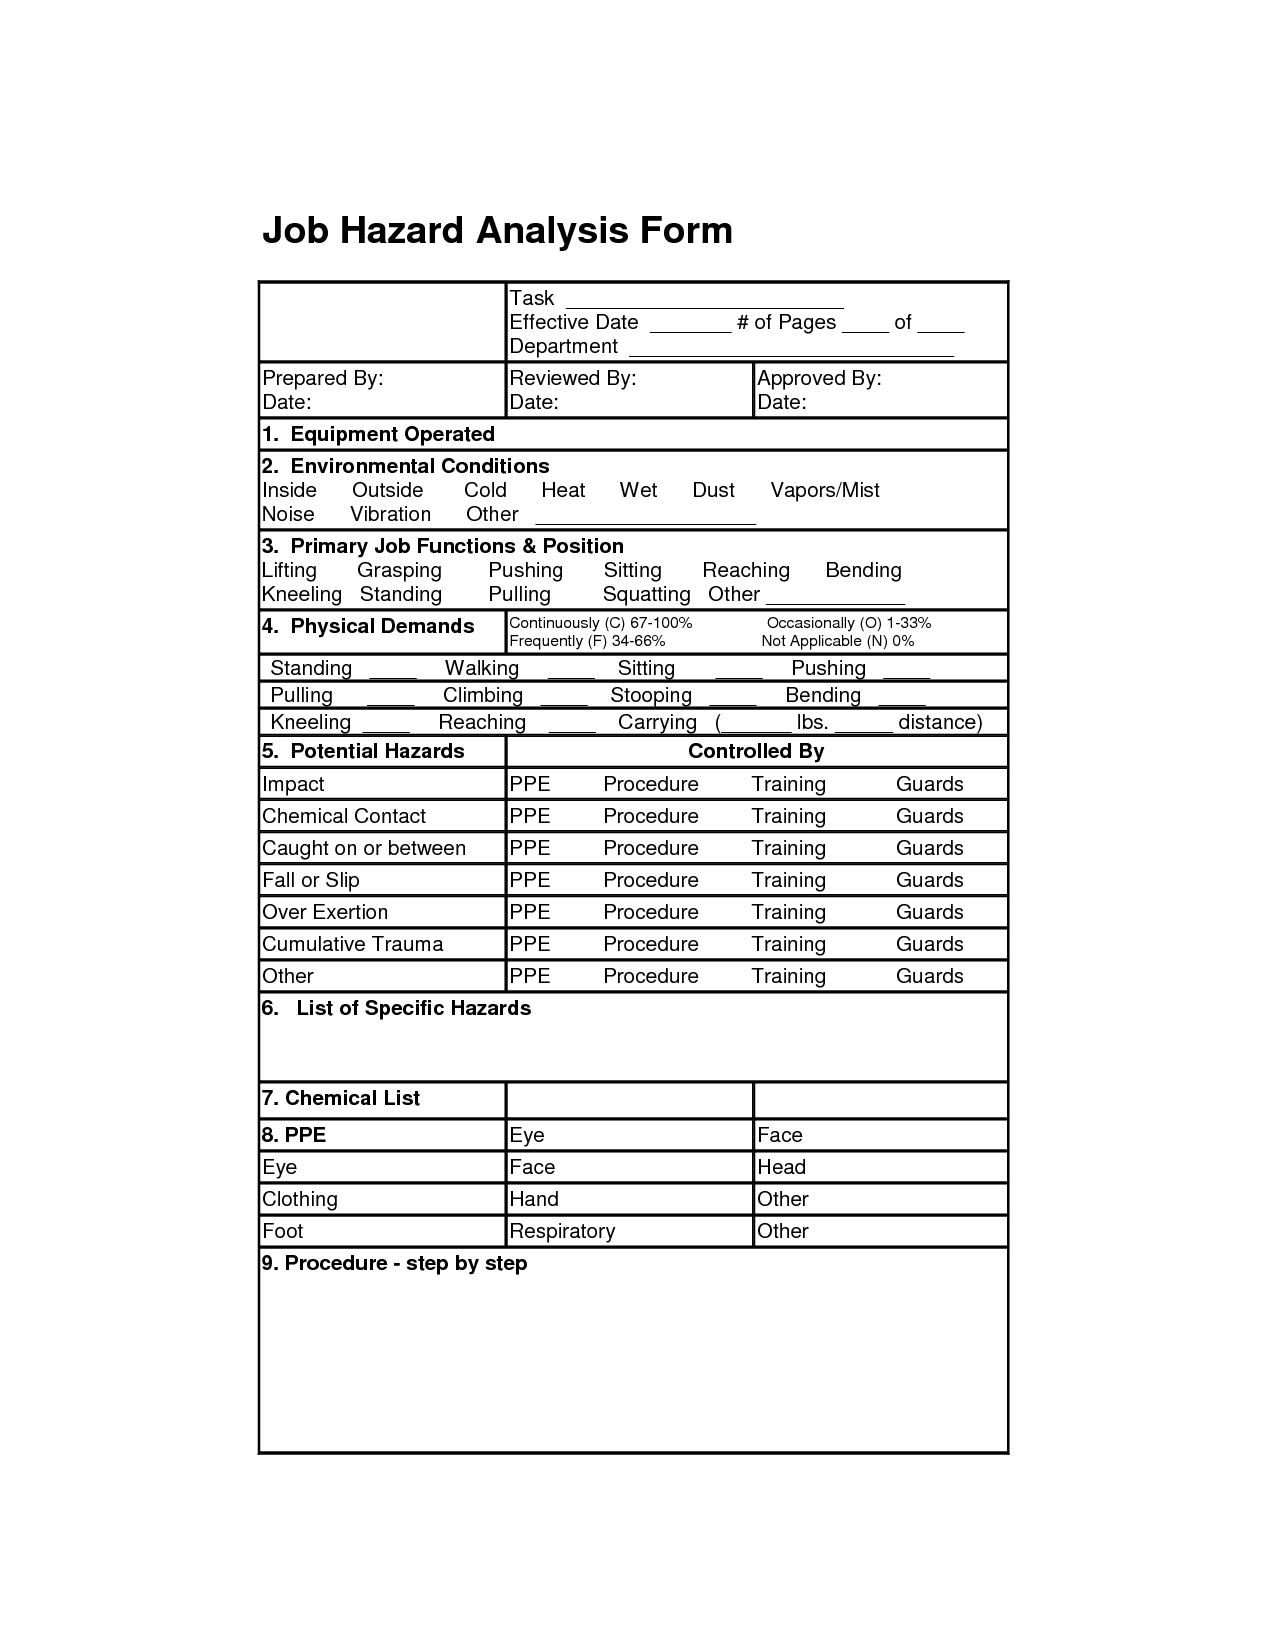 Attractive Best Resumes And Templates For Your Business   Sahkotupakka.co With Job Safety Analysis Template